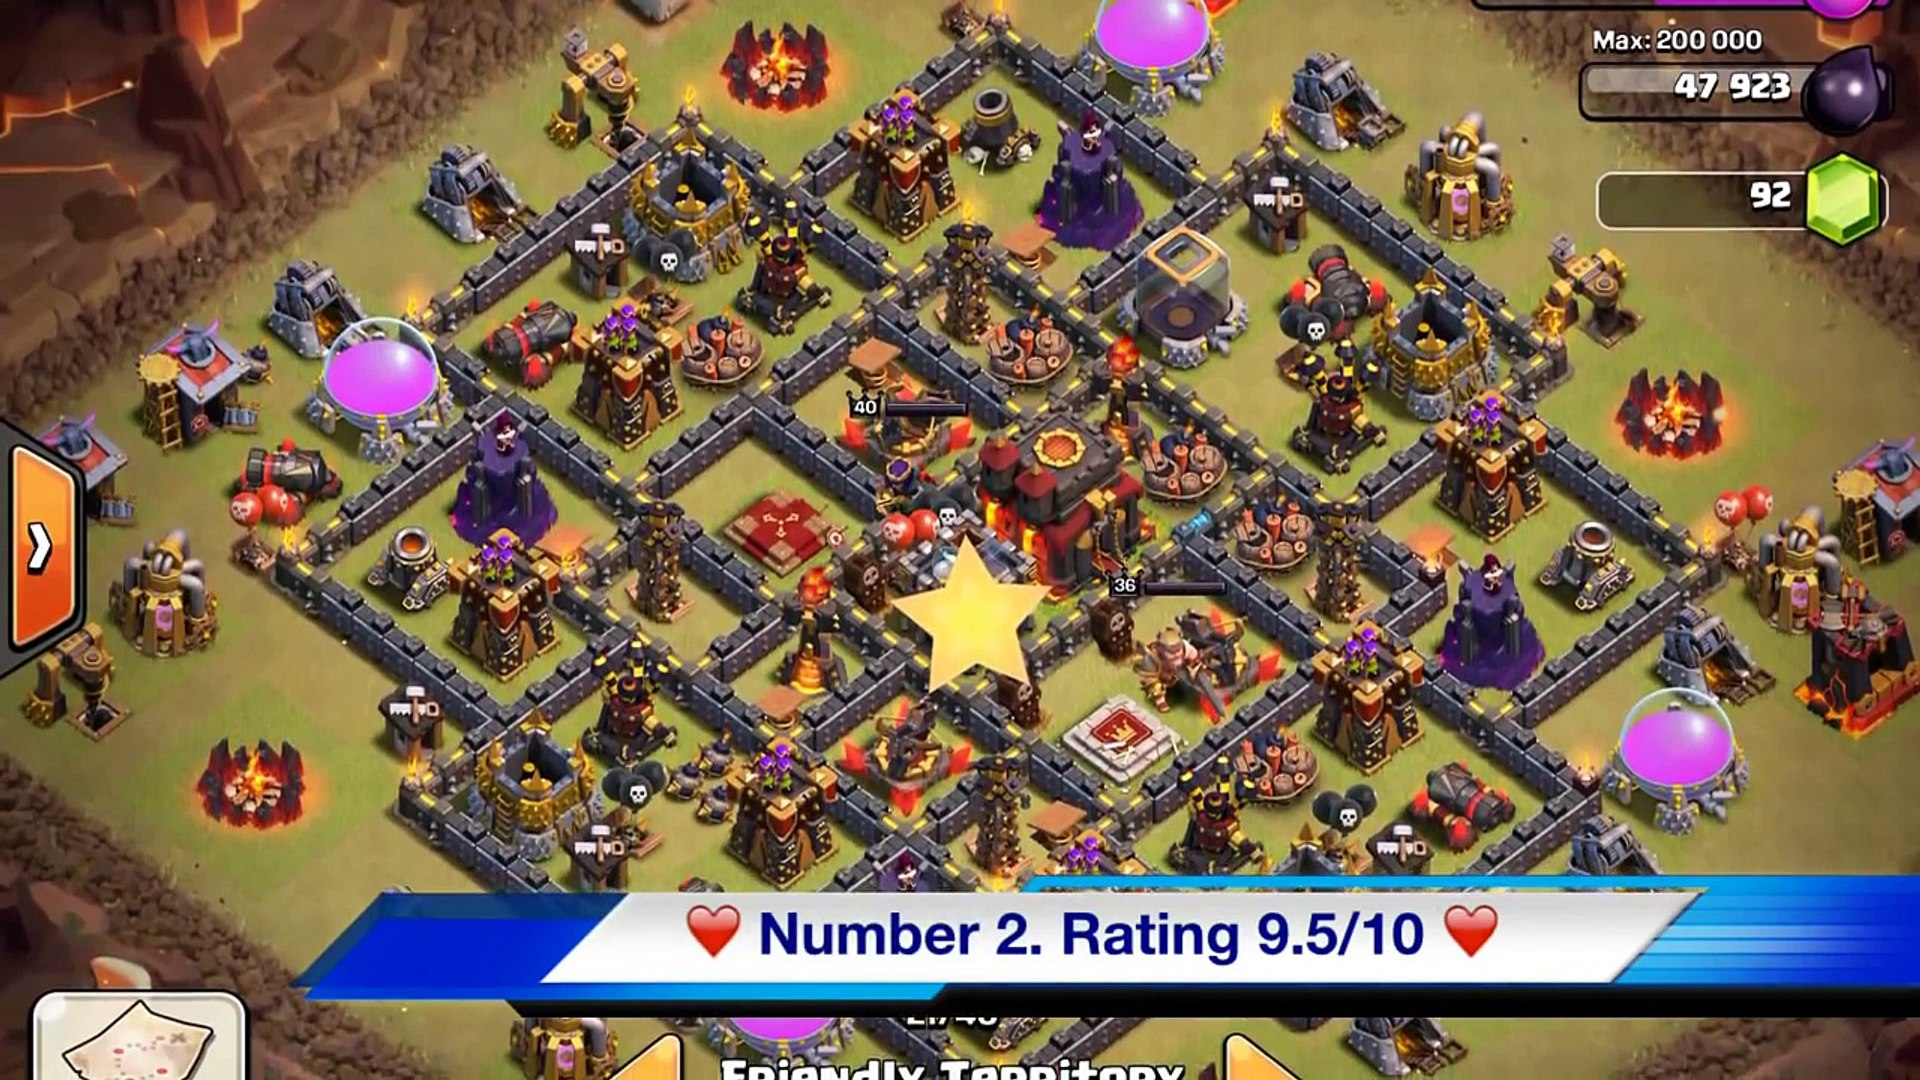 BEST Town Hall 10 Base Design for Clash of Clans - Top 5 th10 war base